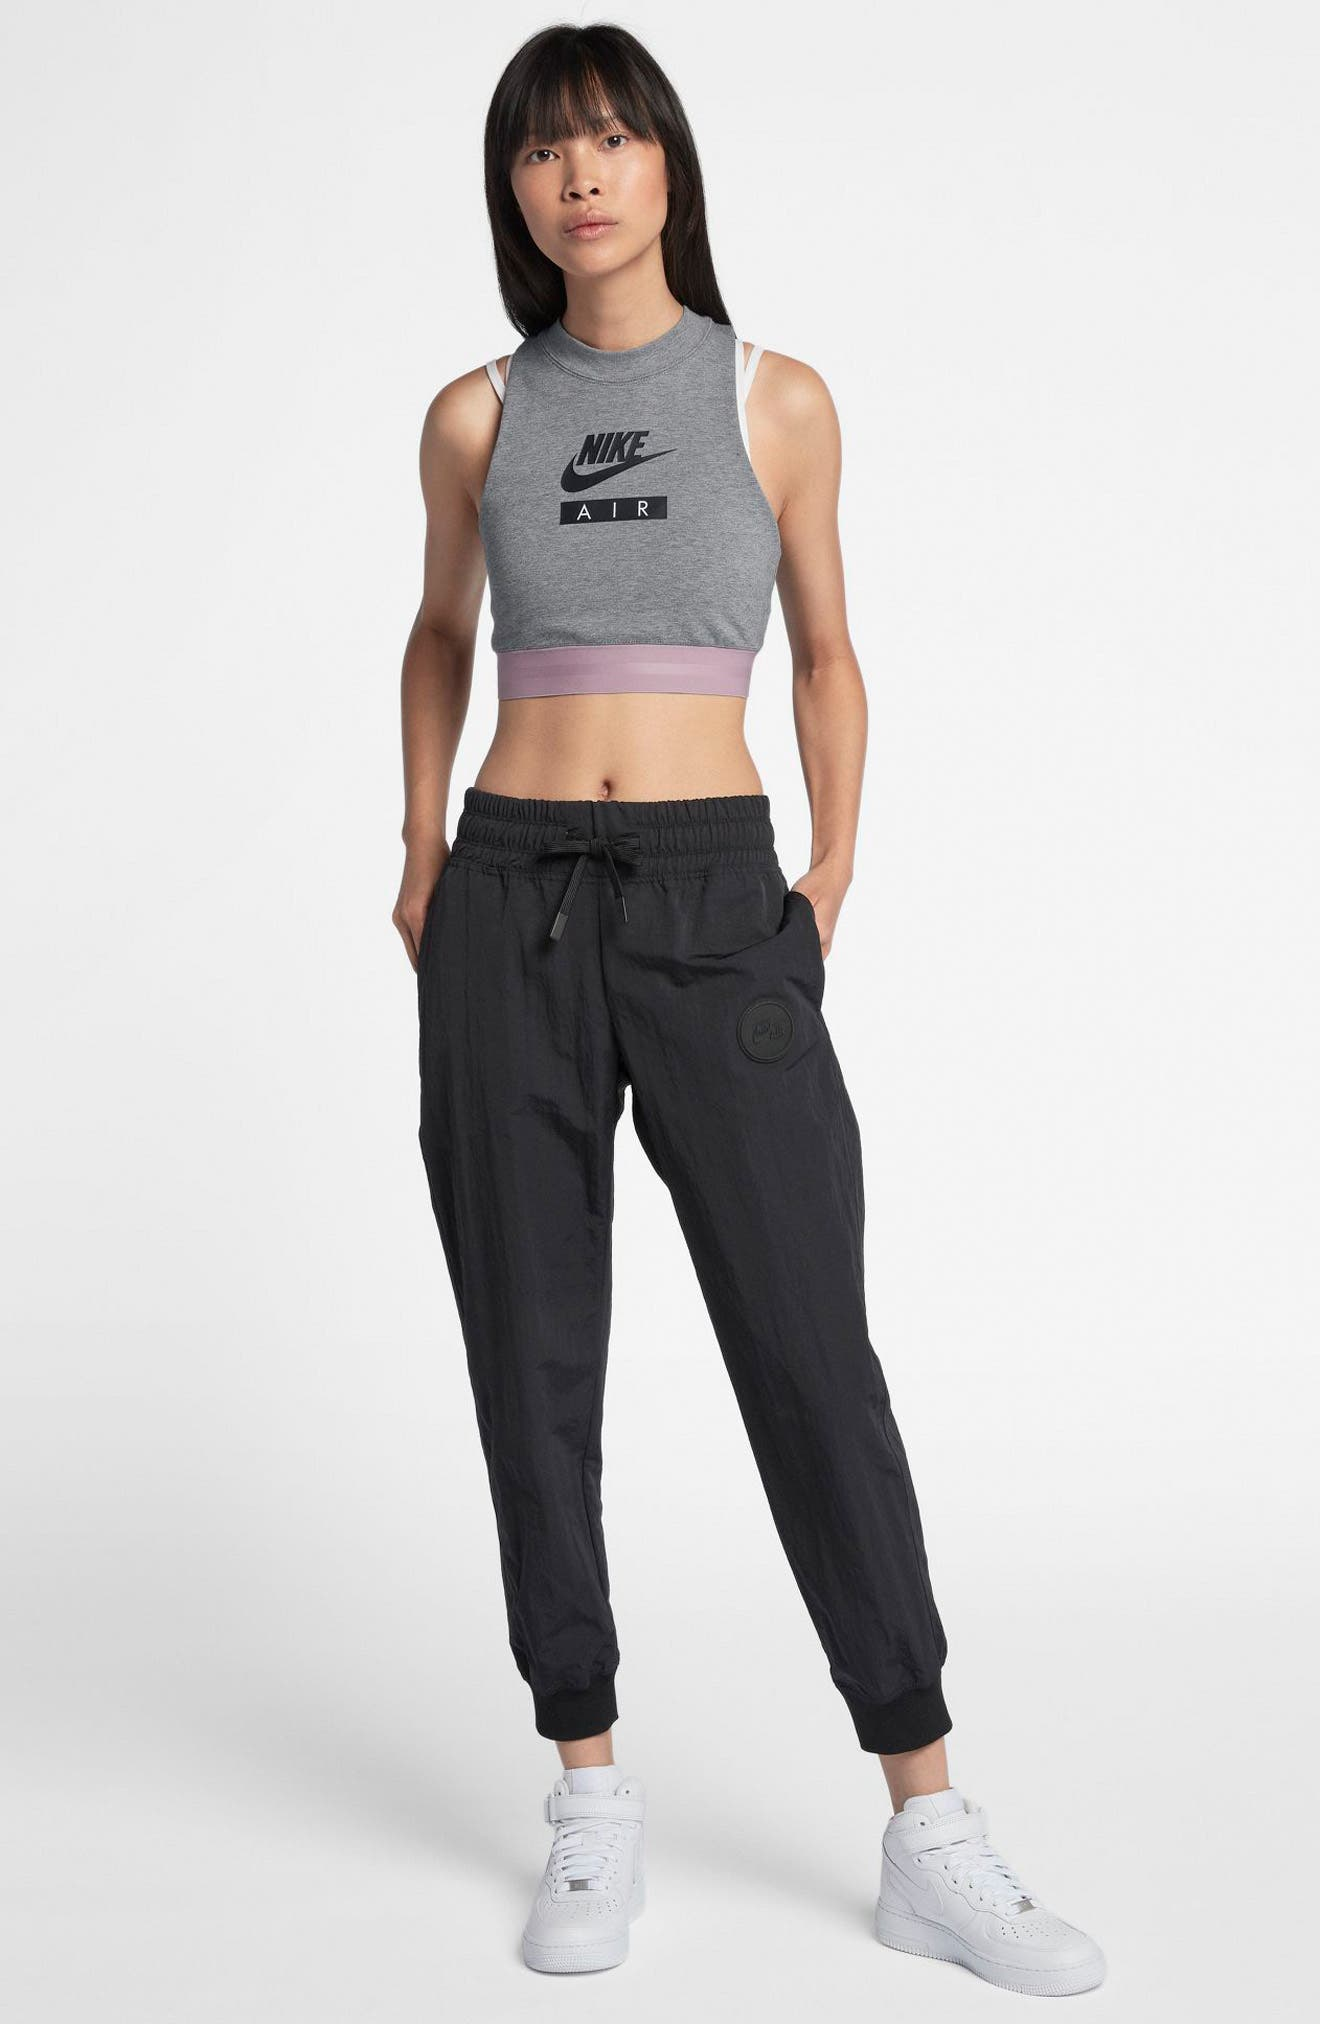 Sportswear Air Crop Top,                             Alternate thumbnail 5, color,                             091